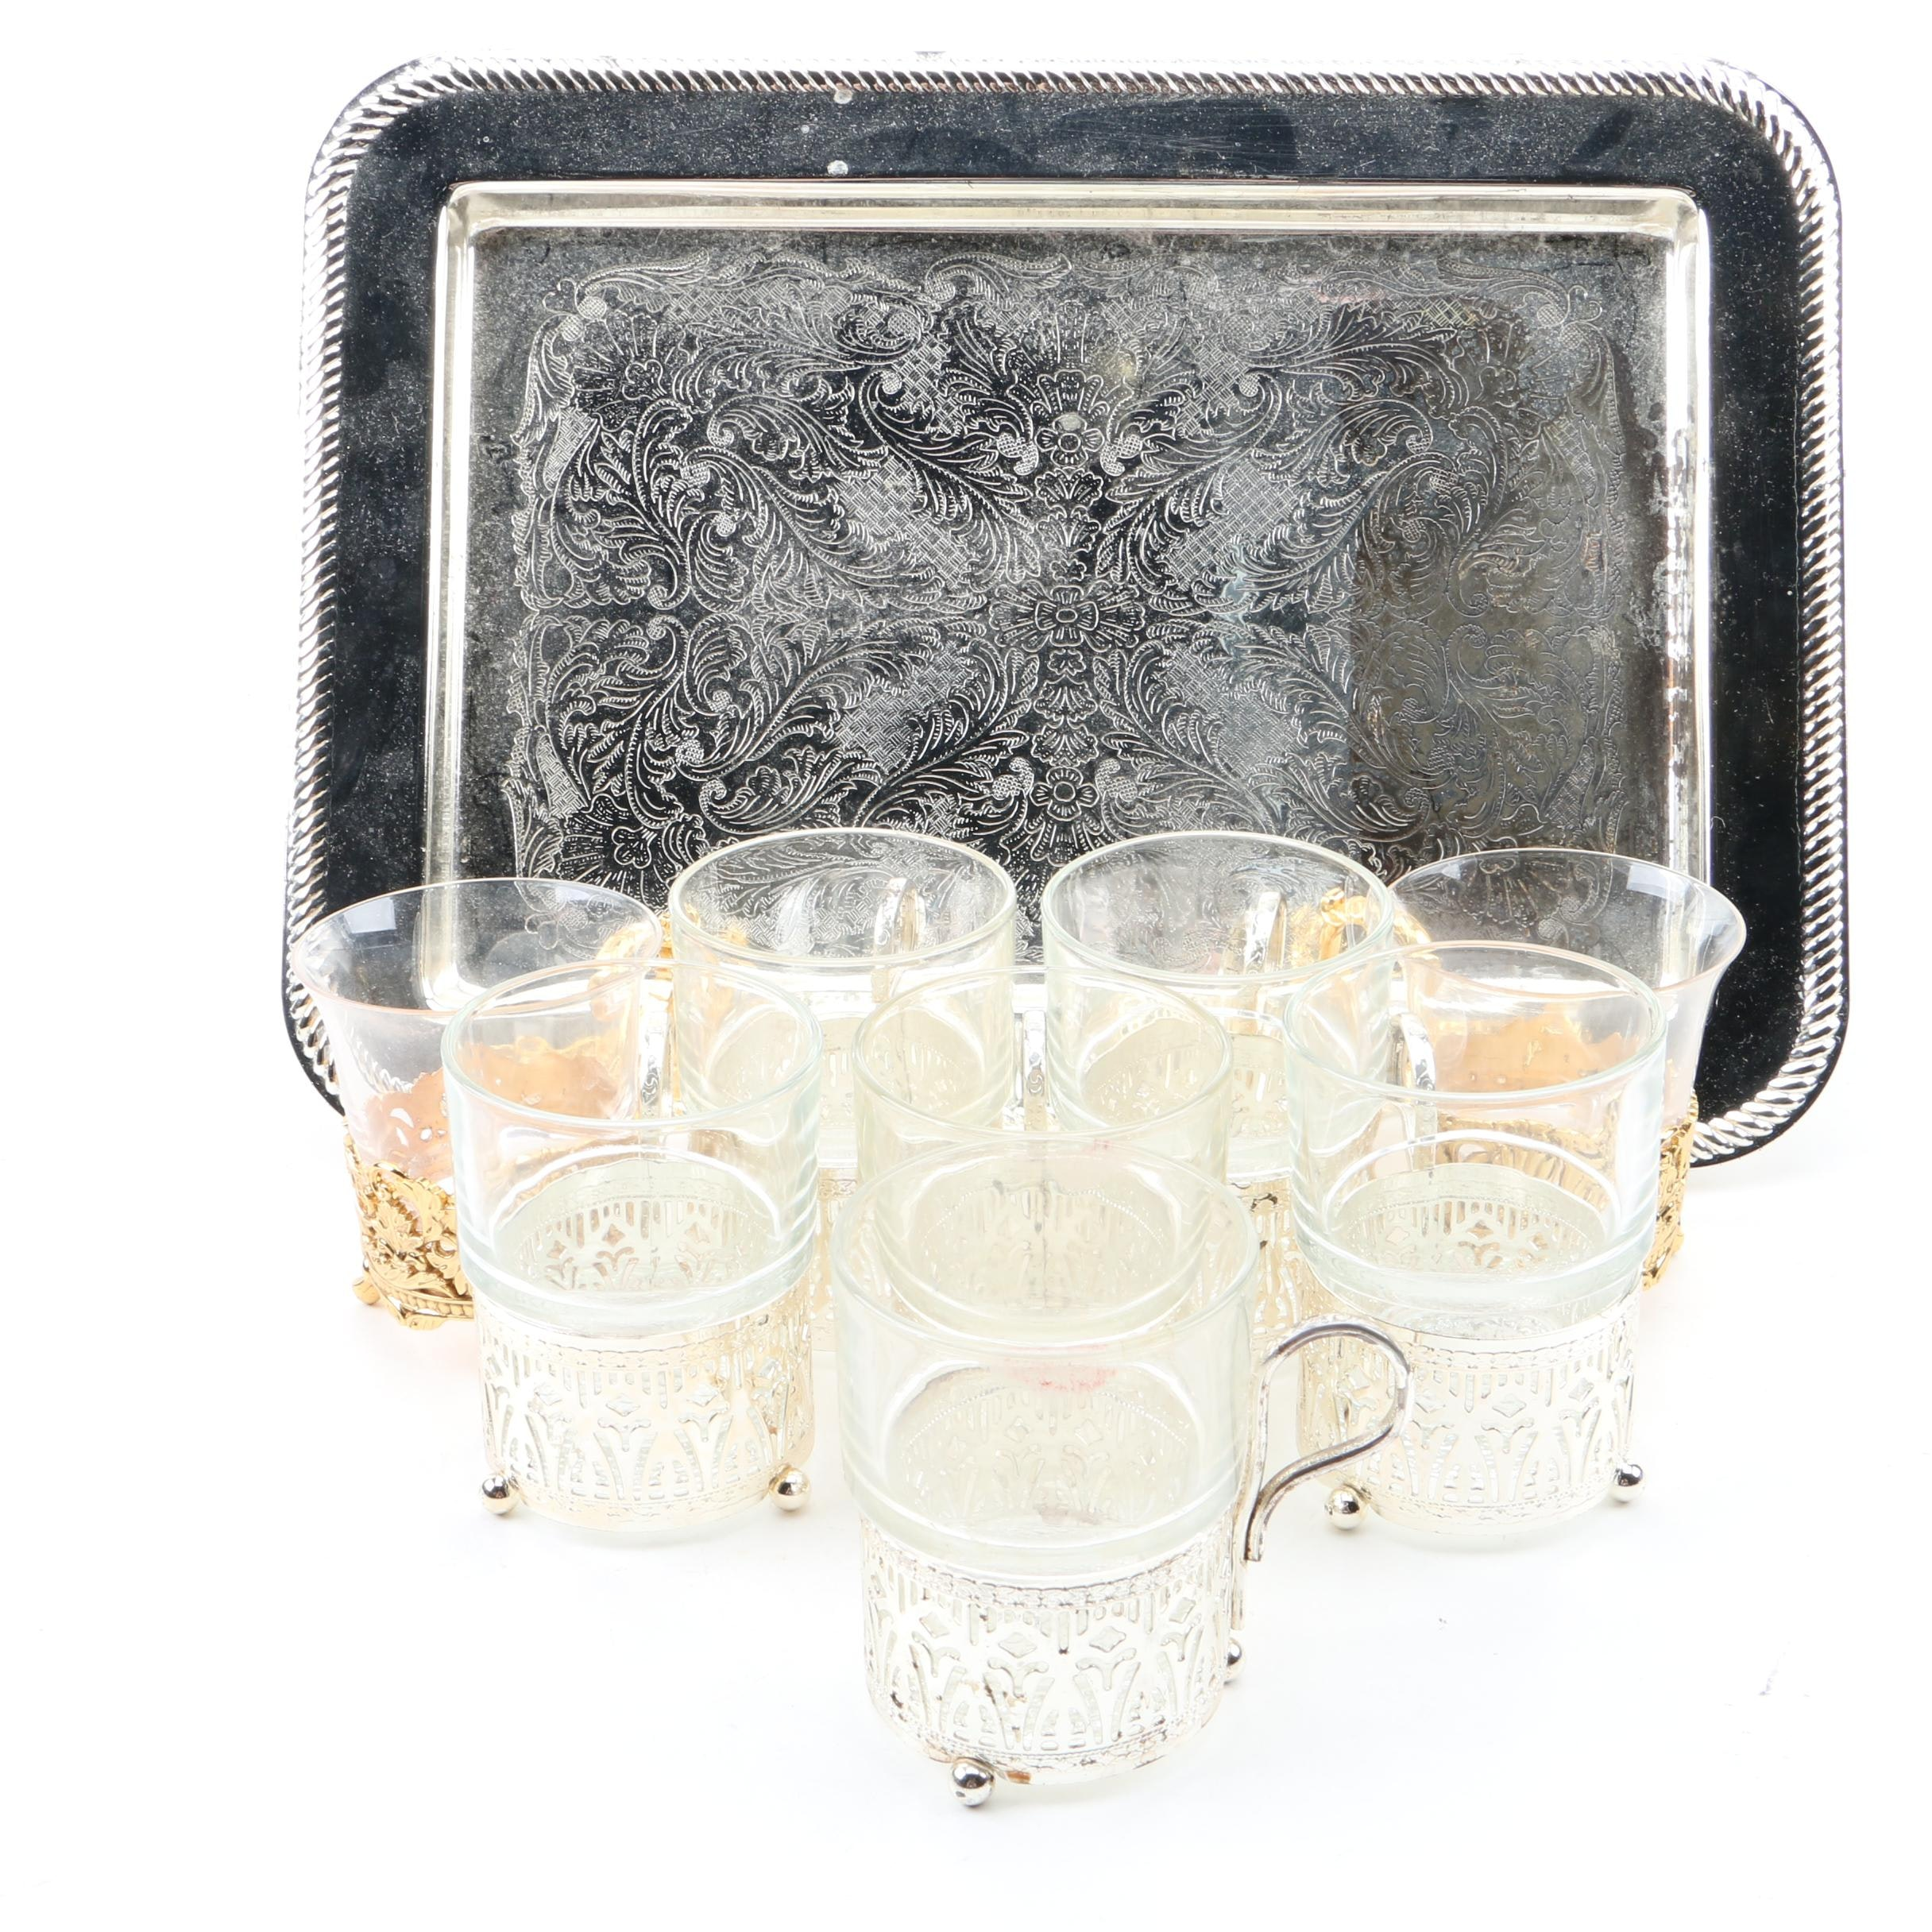 Silver Tray Serving Tray and Demitasse Cups with Glassware